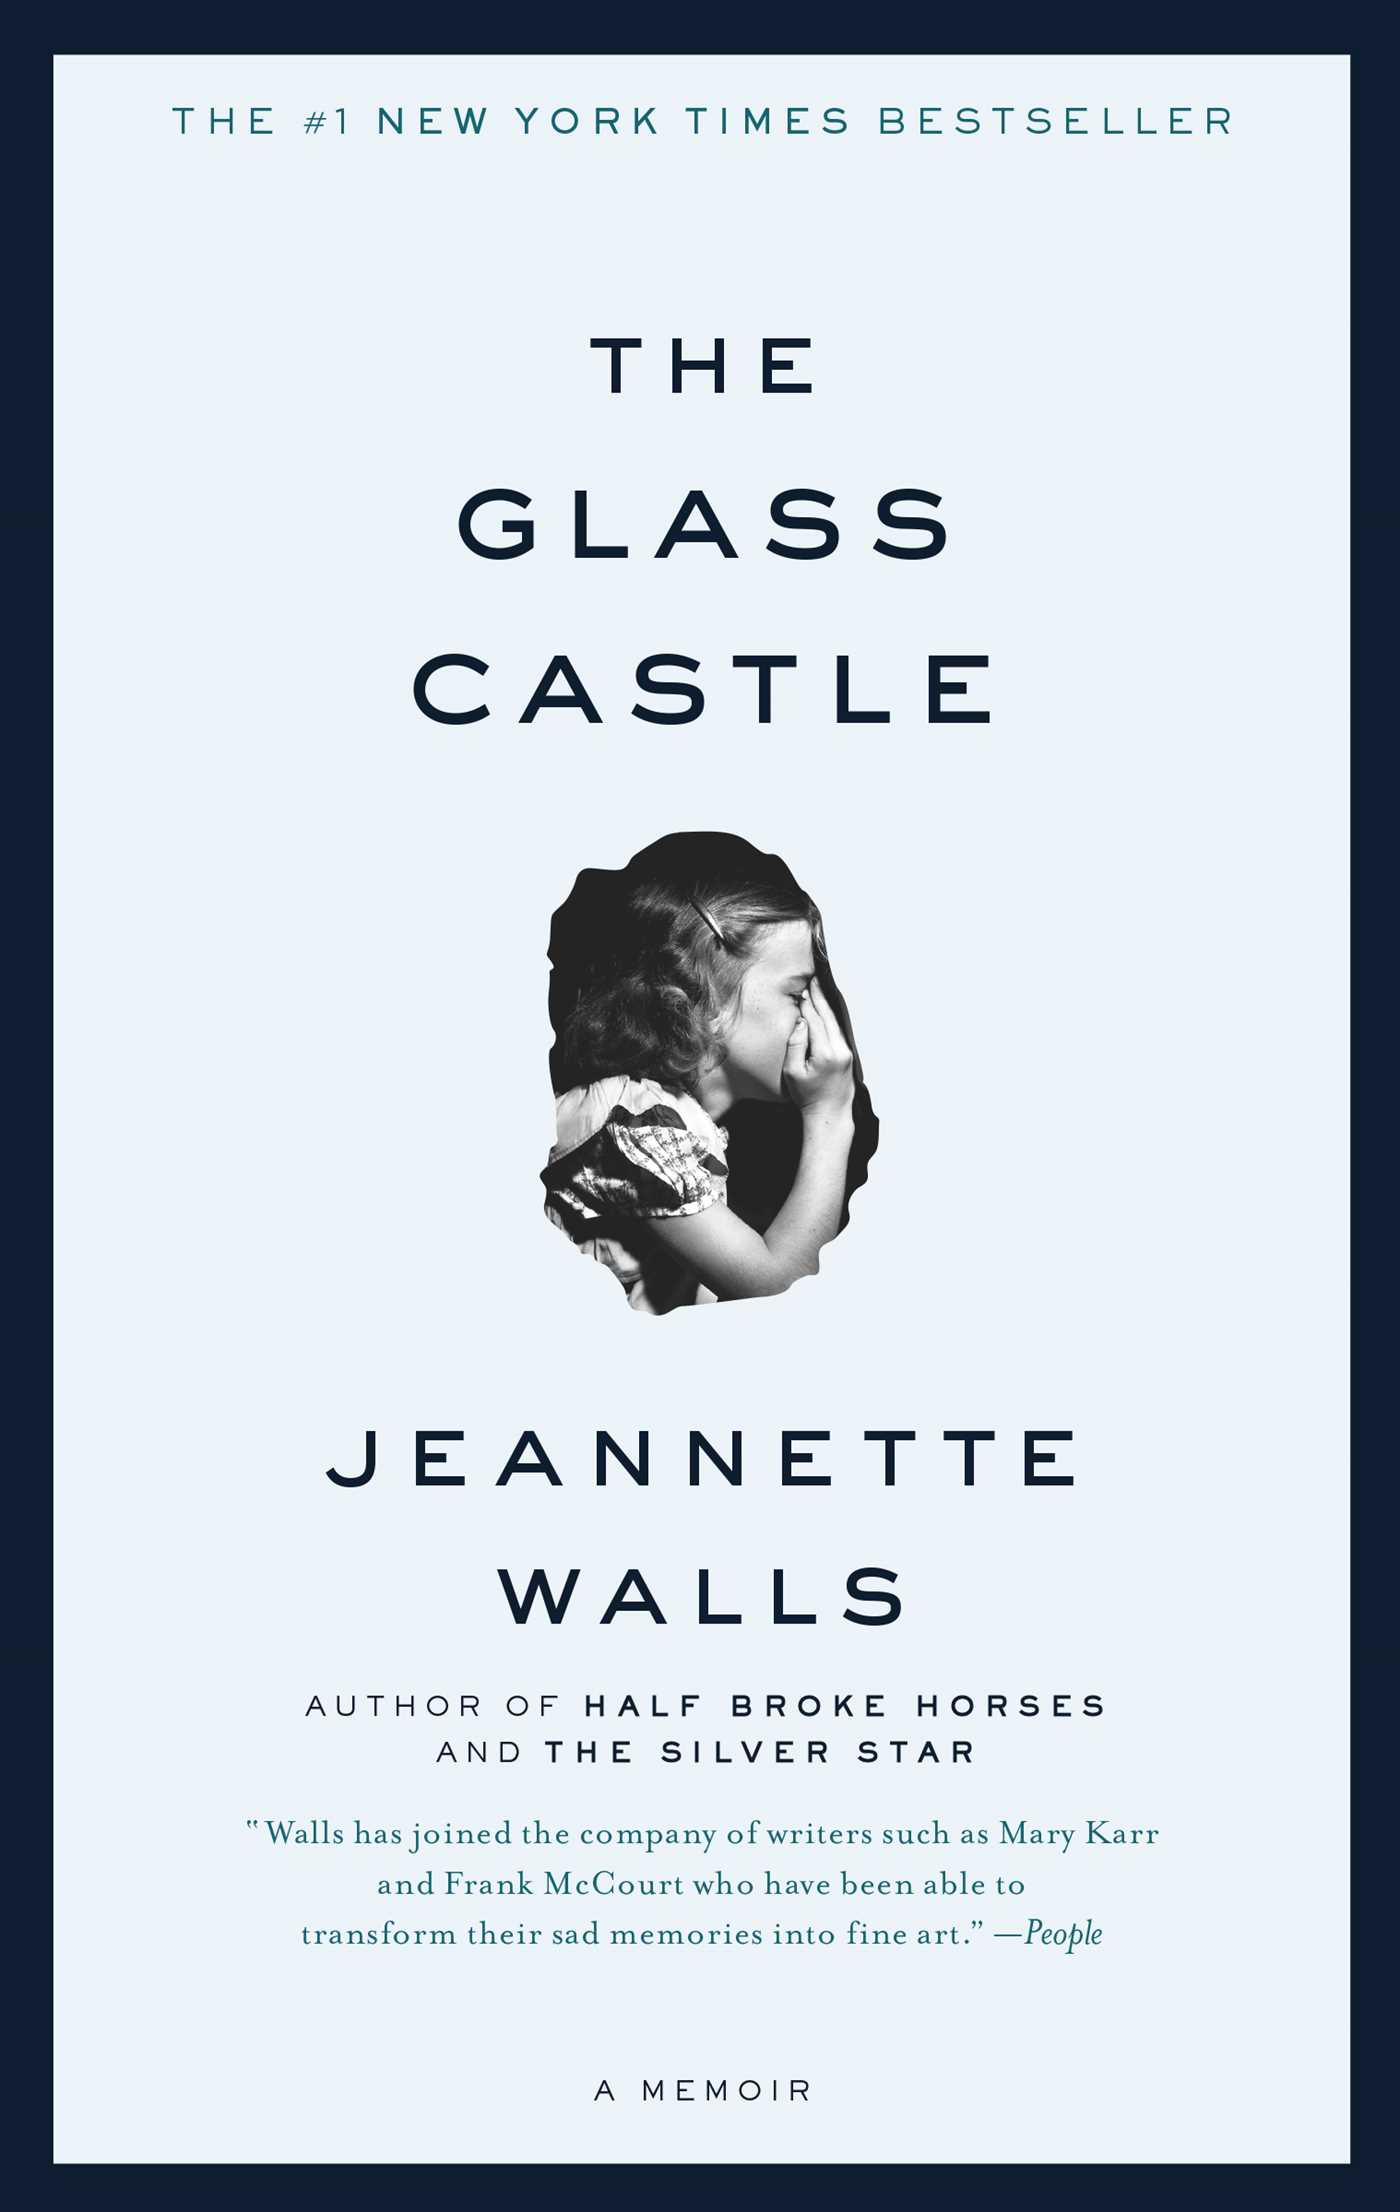 The glass castle 9781416550600 hr